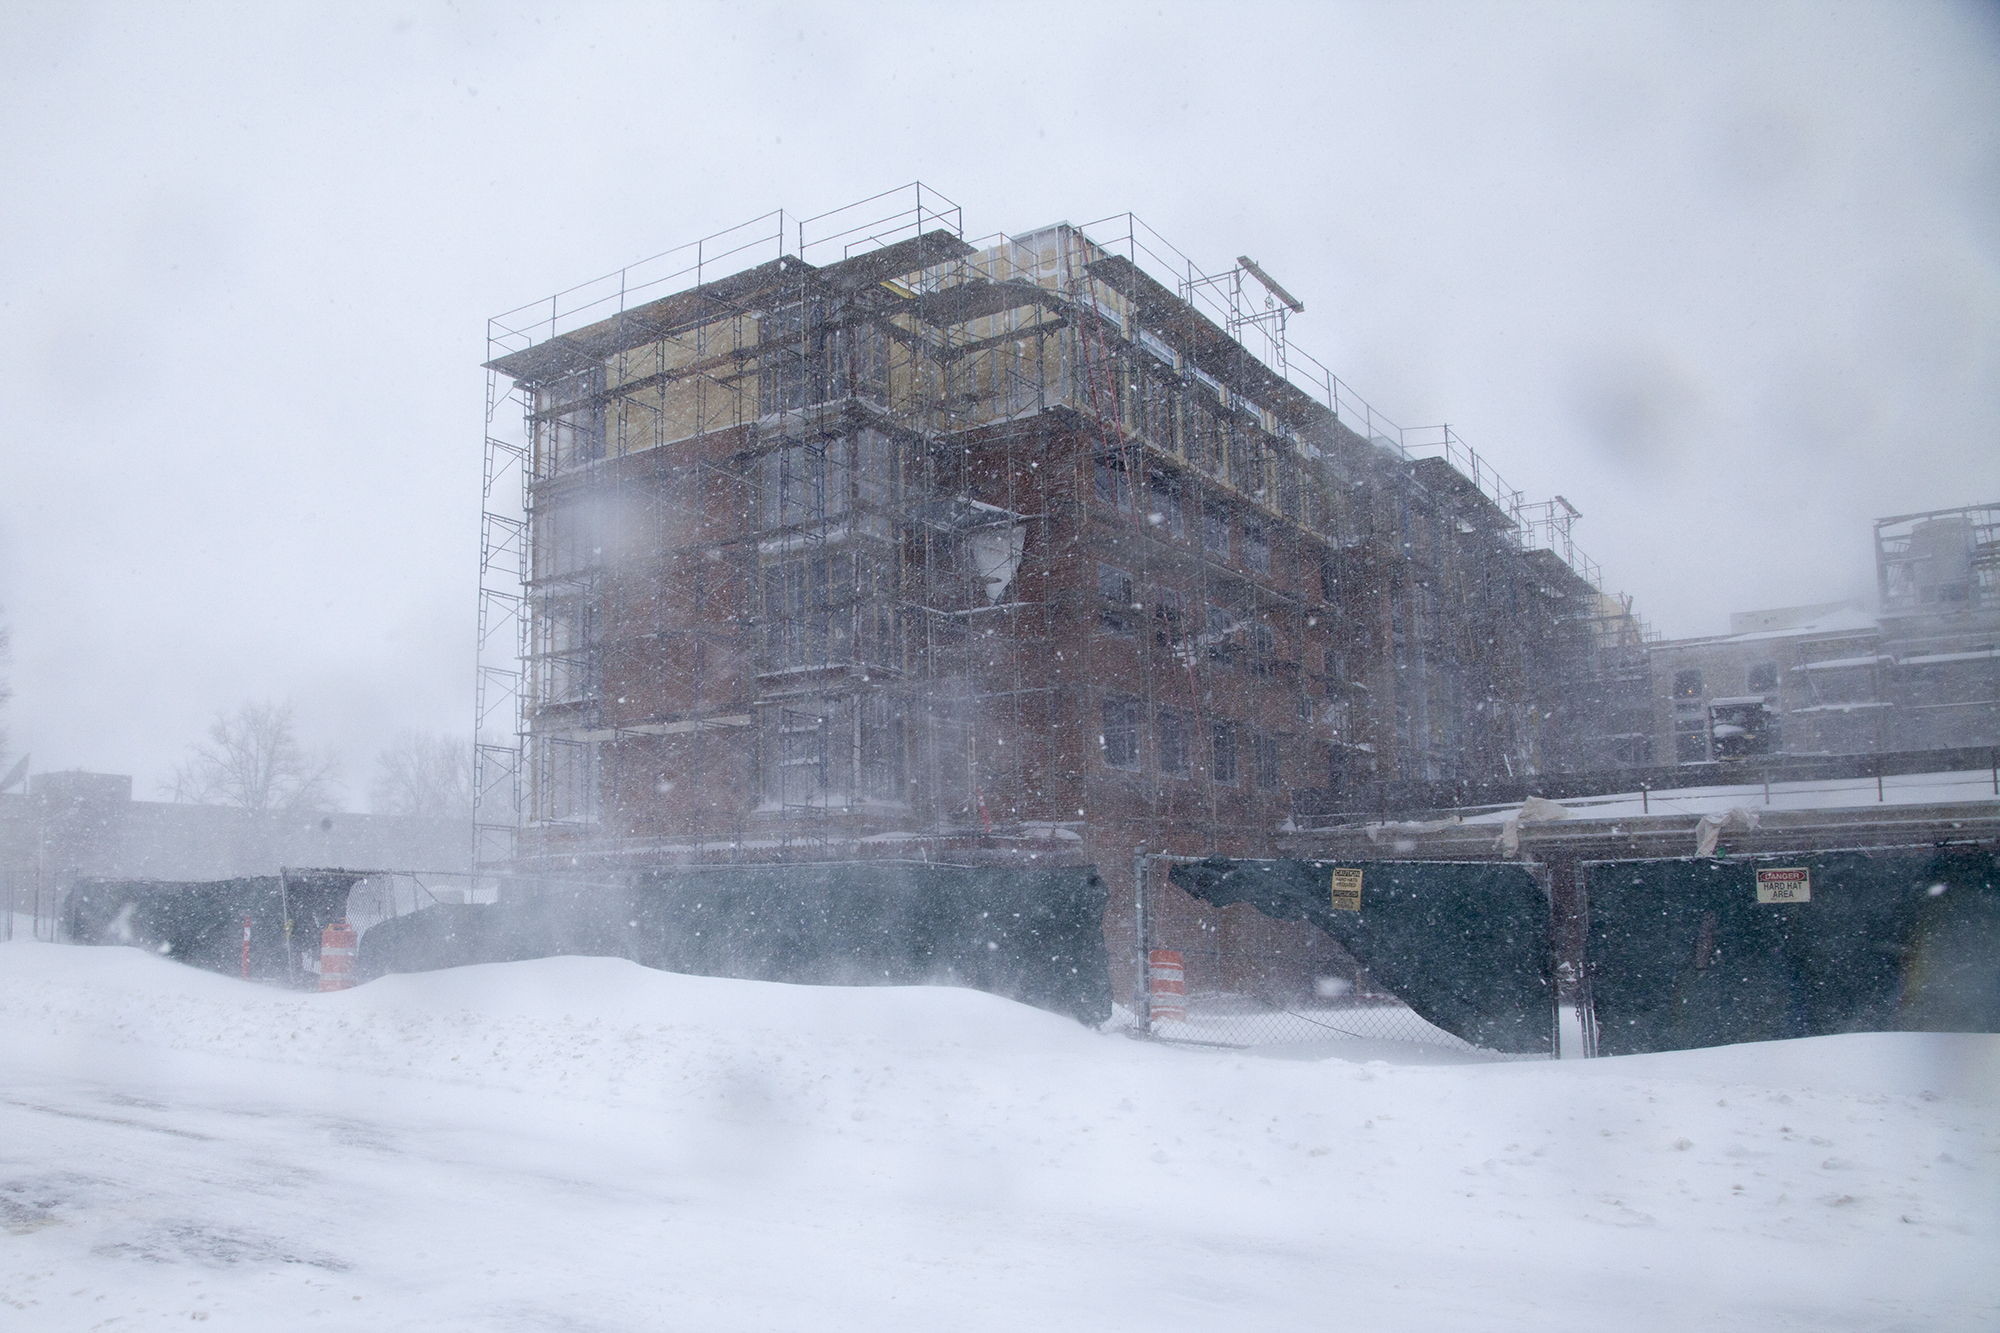 The new residence hall currently under construction by the Student Union at Stony Brook University during Winter Storm Jonas on Saturday, Jan. 23. CHRISTOPHER CAMERON/THE STATESMAN